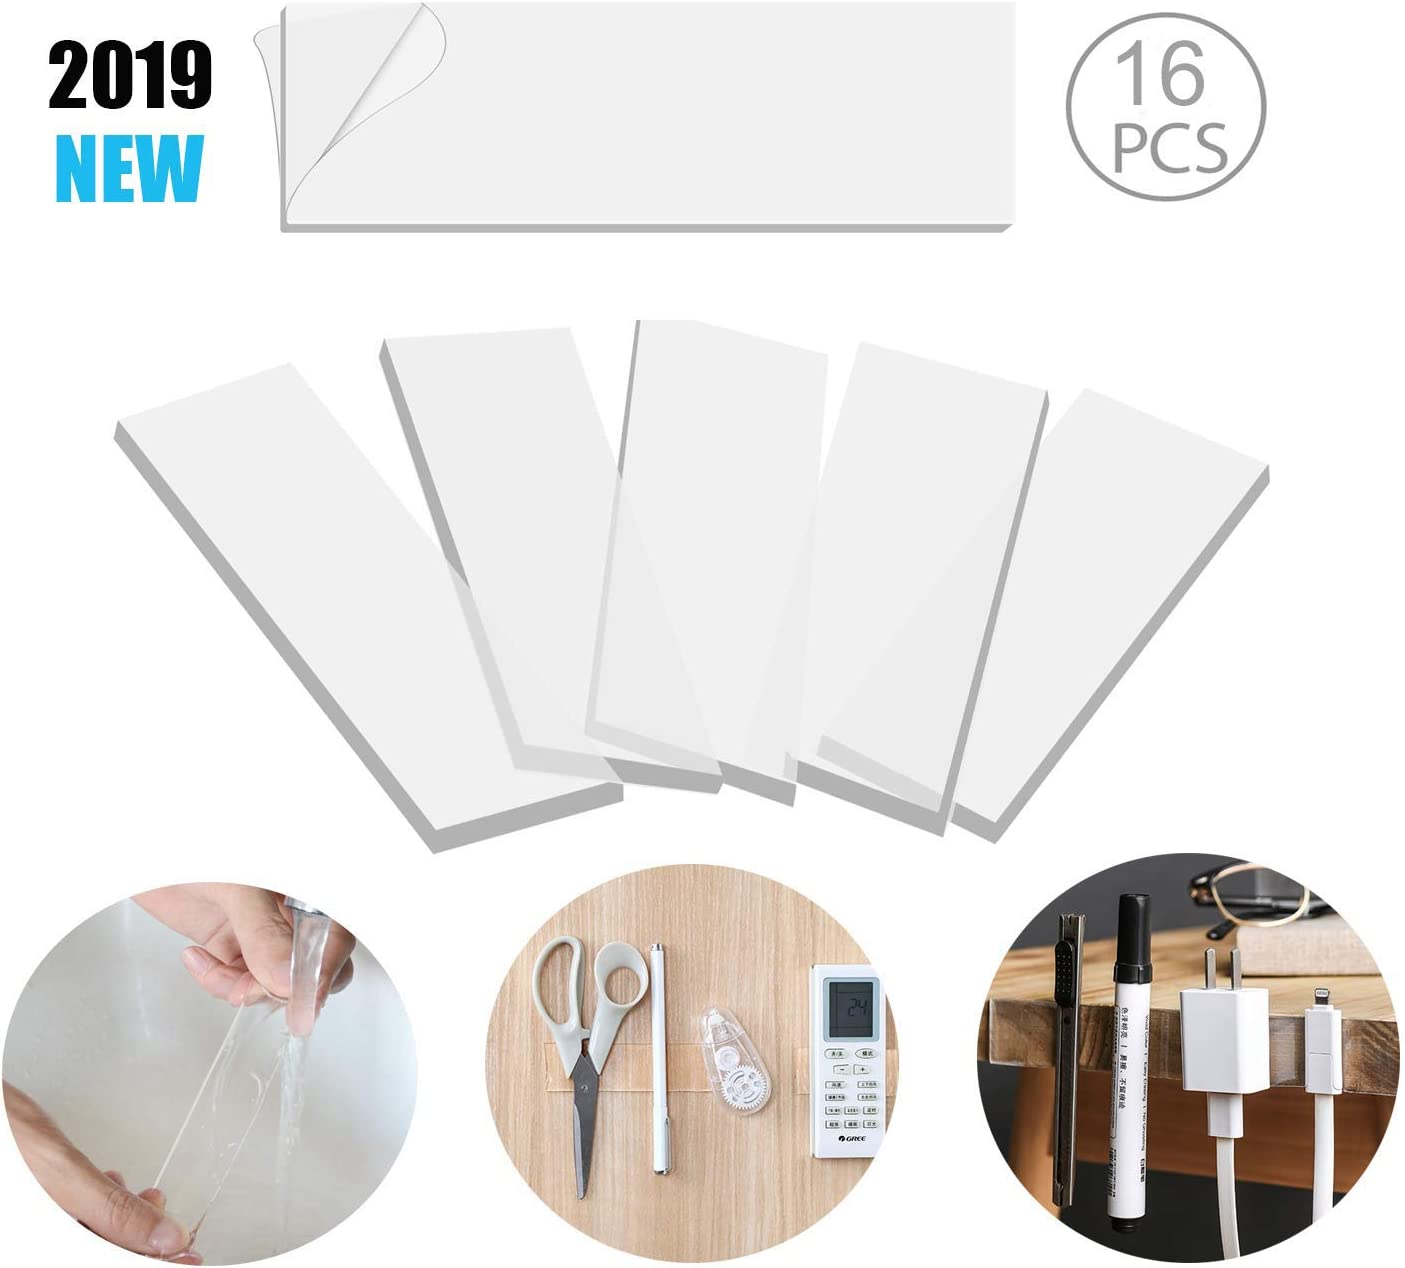 16PCS Removable Wall Mounting Sticky Gel Tape Washable Traceless Transparent Tape for DIY Craft Home Office Carpet Rug Couch Cushion Gripping BRAVESHINE Double Sided Adhesive Strips 1.2x4 Inch